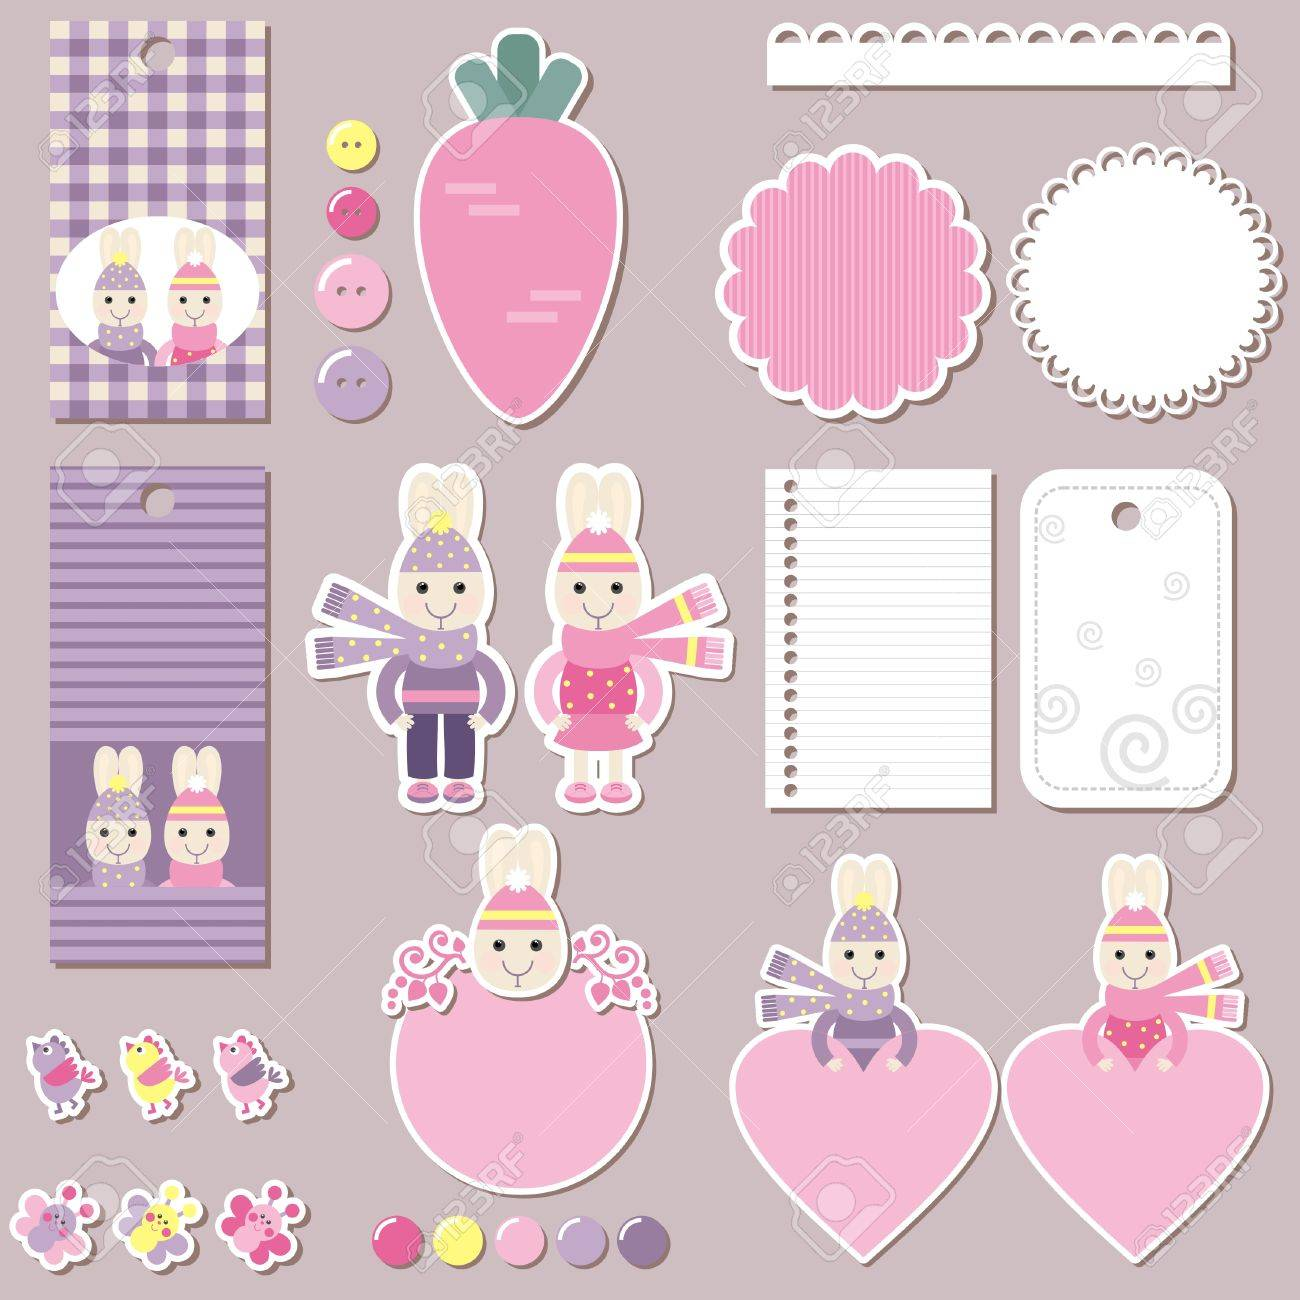 Scrapbook Design Elements For Kids Labels Buttons Tags Stickers